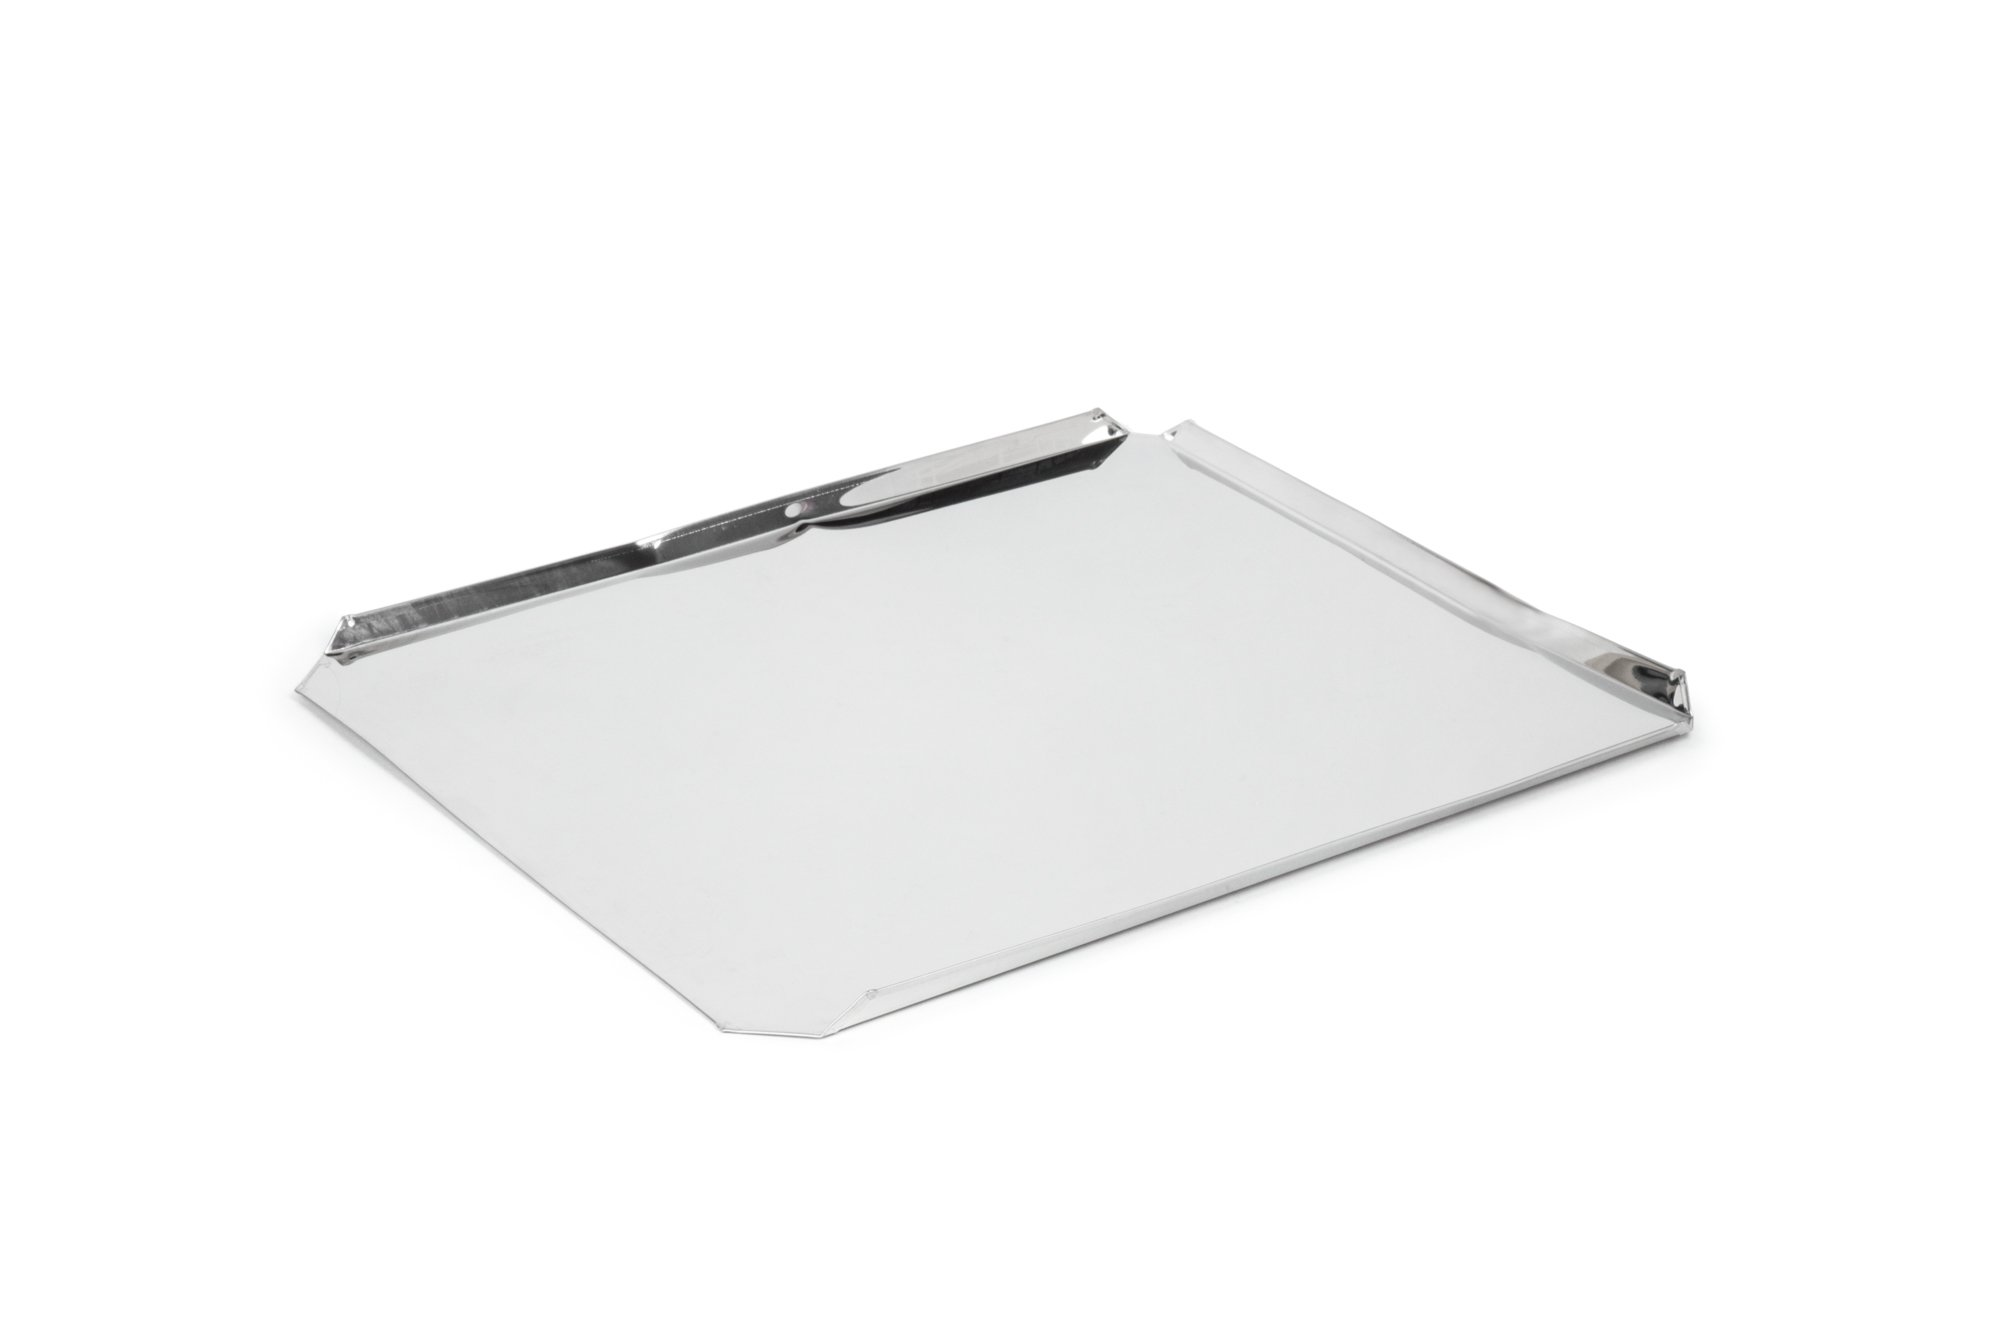 Fox Run 44927 Cookie Sheet, Stainless Steel, 17-Inch x 14-Inch